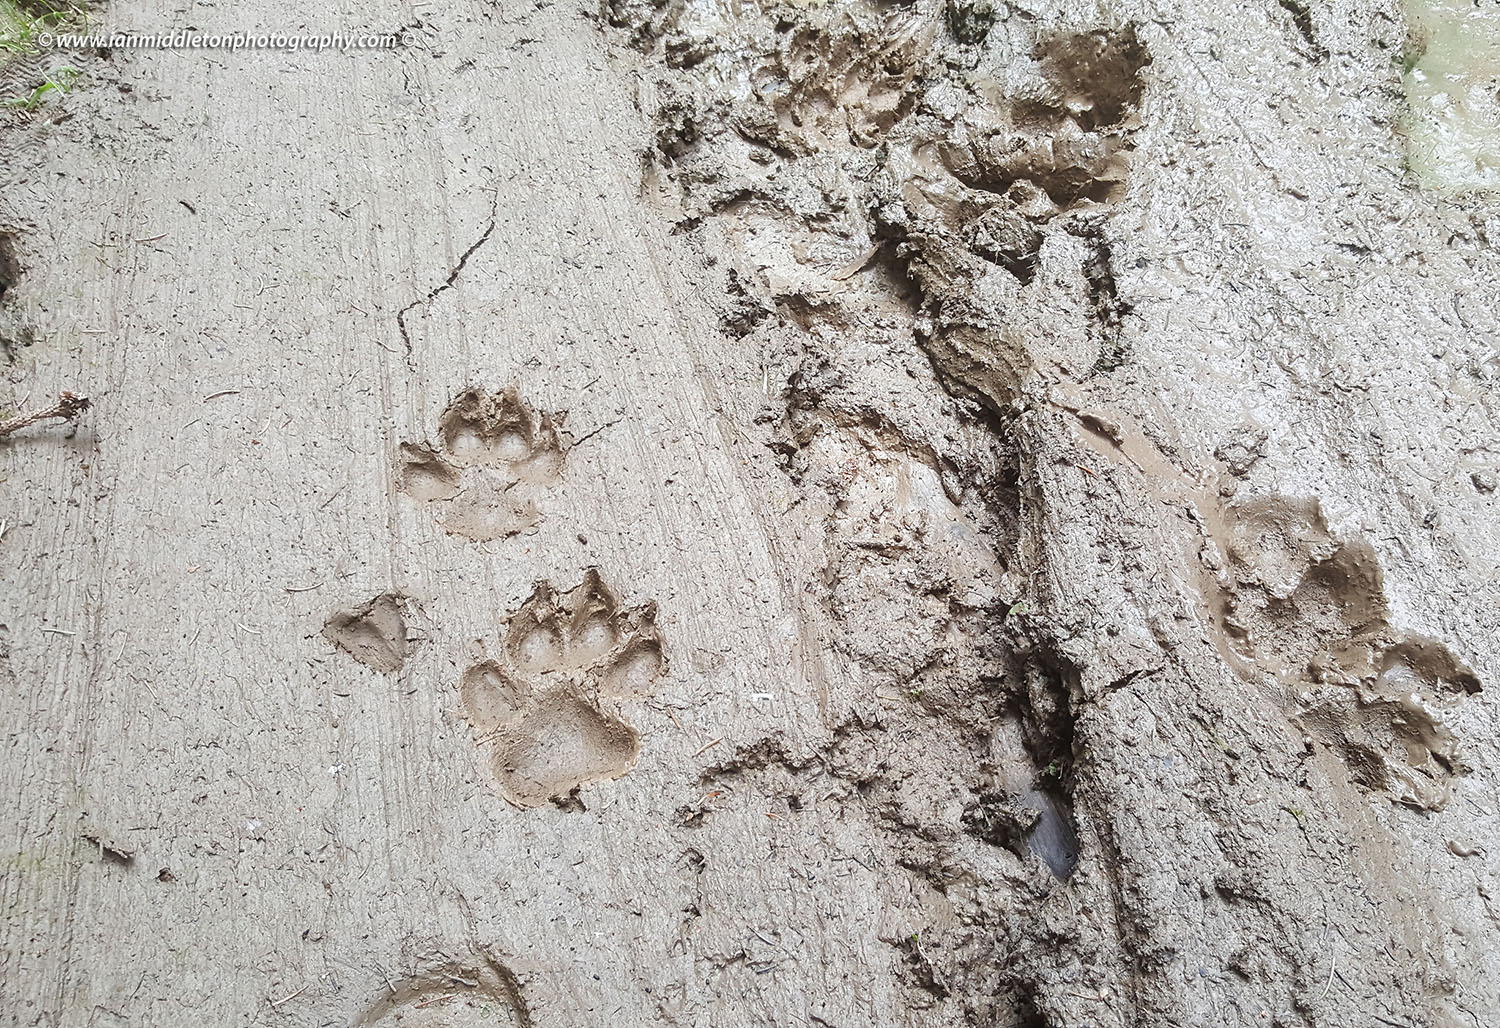 Wolf footprints in a forest in Loski Potok, Slovenia